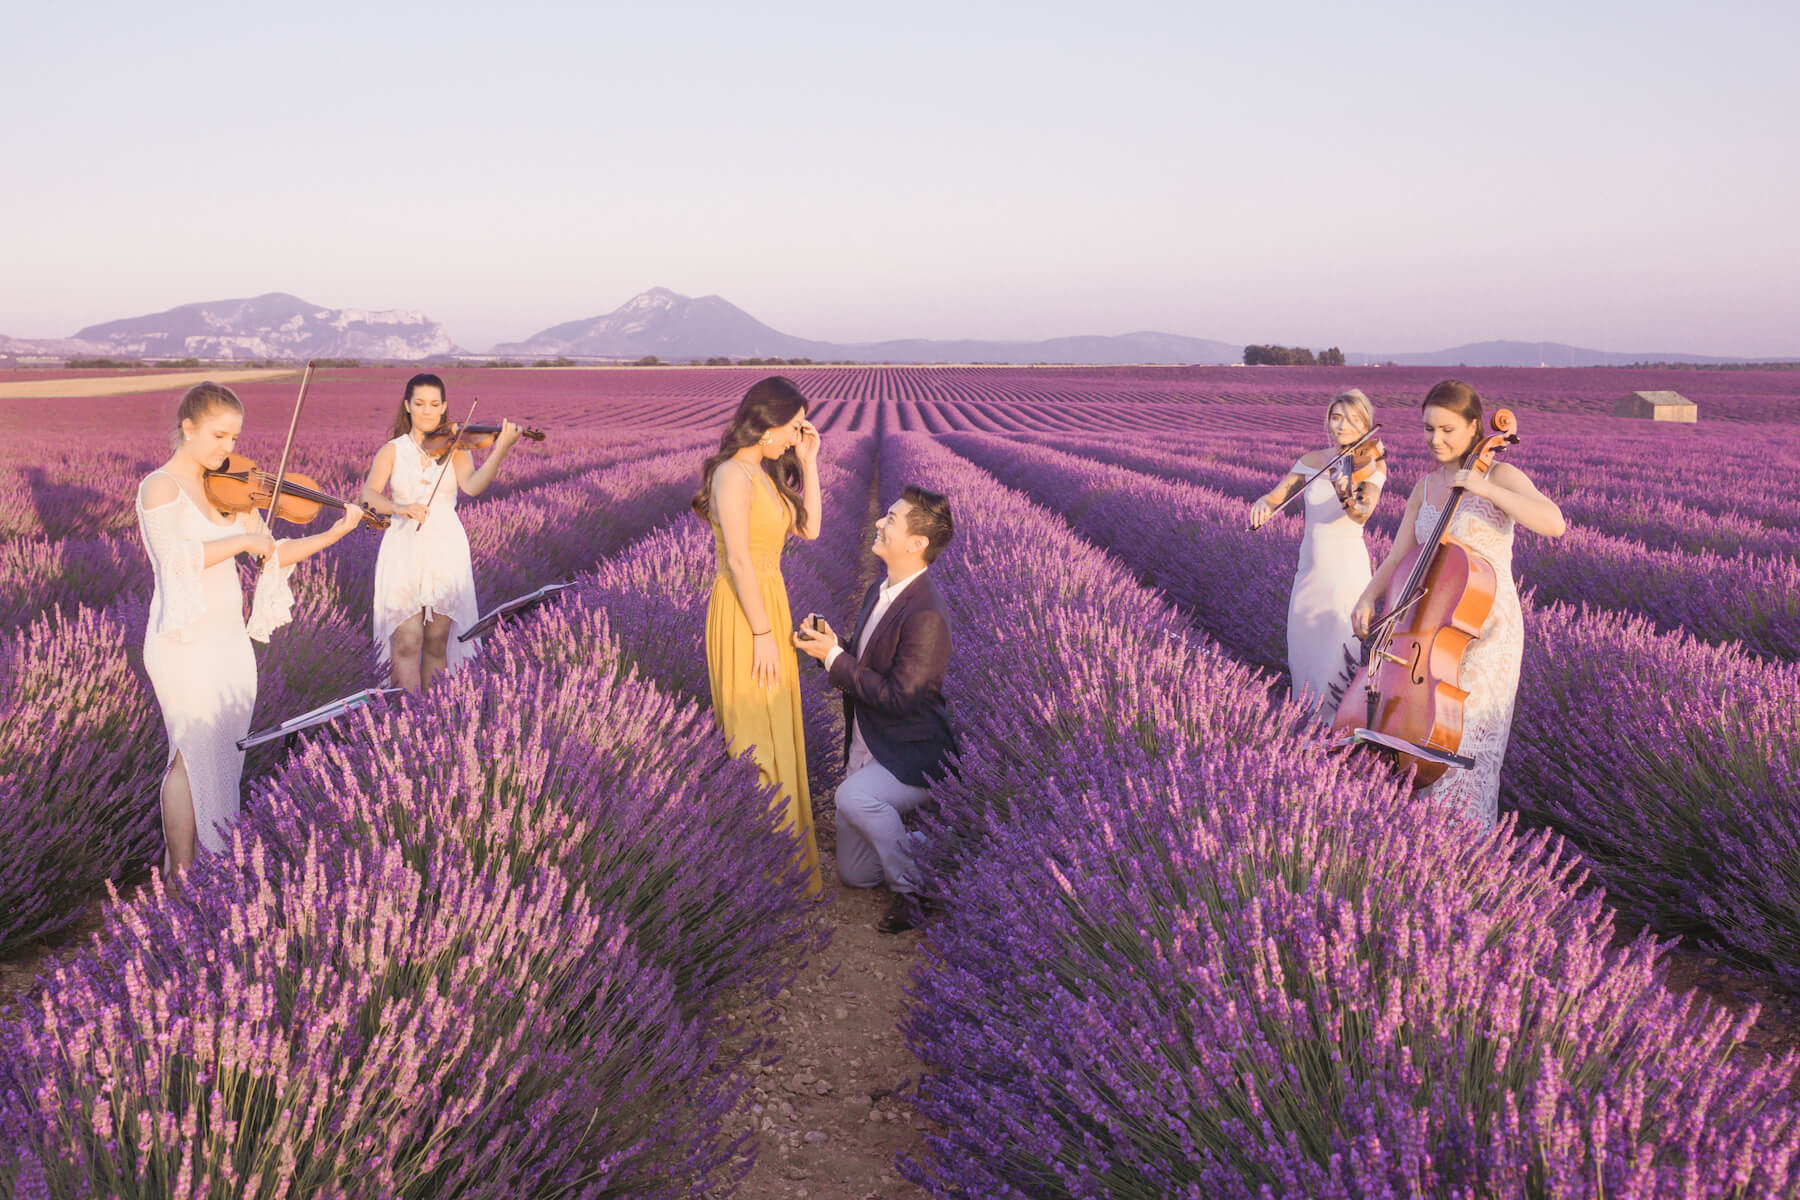 A man is proposing to a woman in a lavender field in Provence, France. There violin players surrounding them as he proposes.